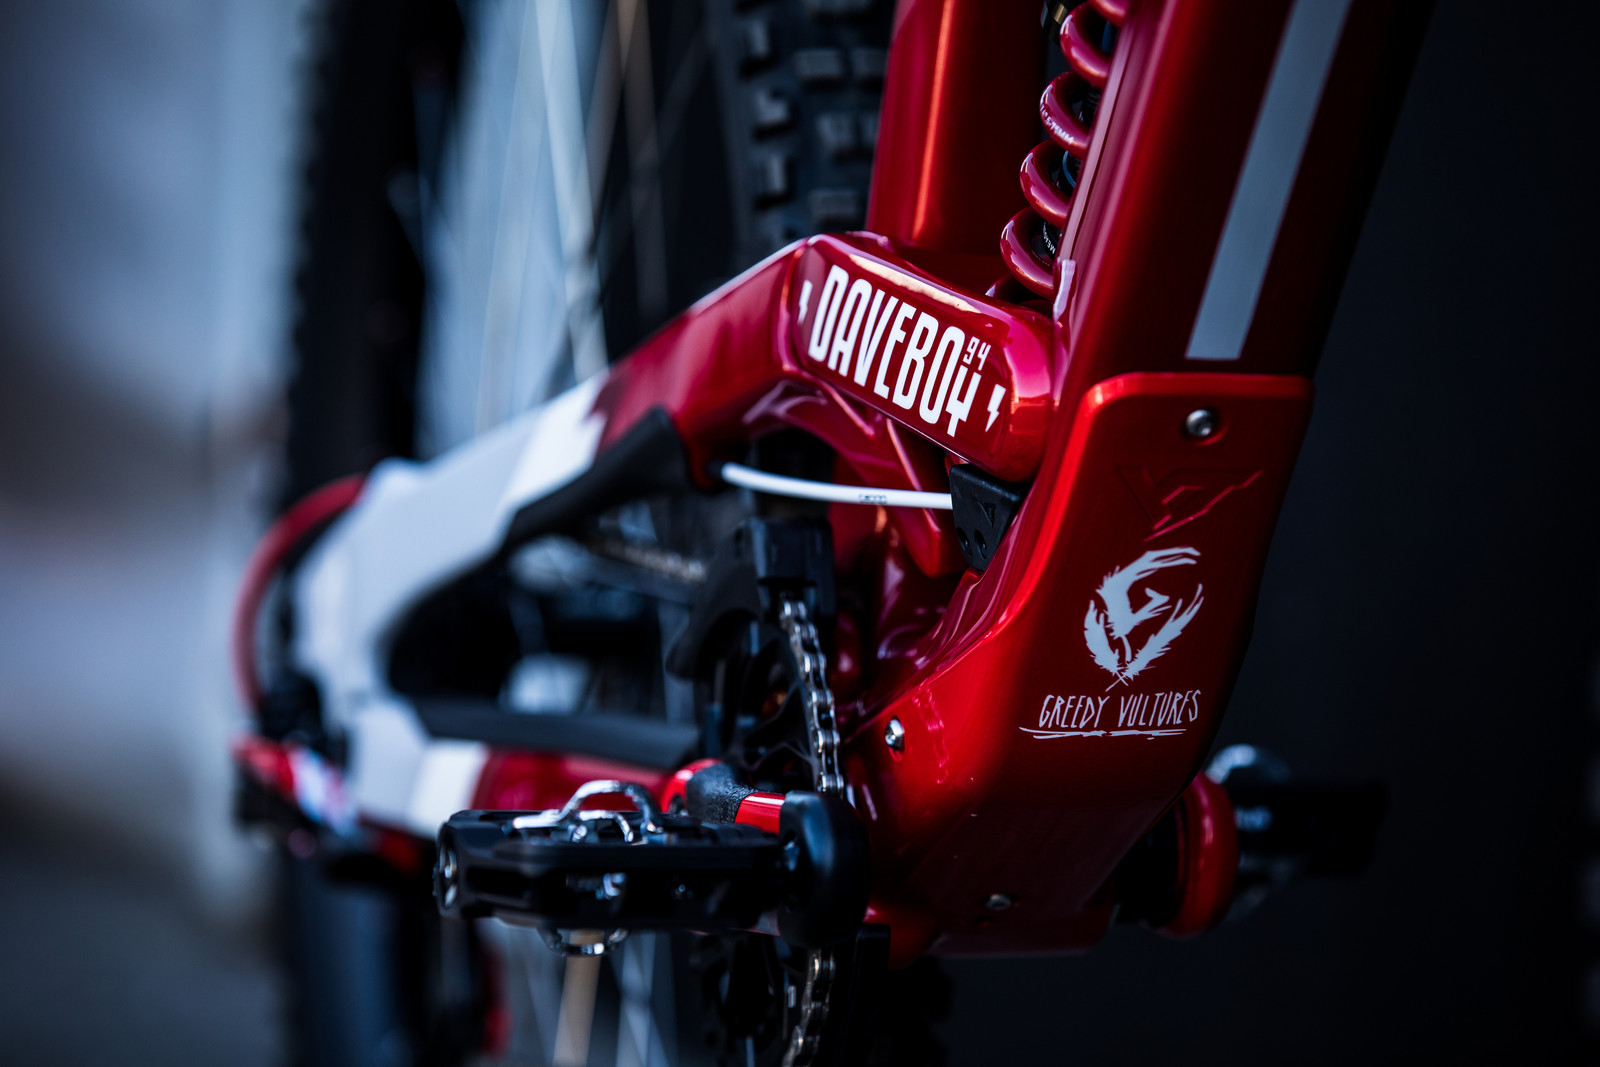 David Trummer's YT TUES at 2019 Worlds MSA - David Trummer's YT TUES at 2019 Worlds MSA - Mountain Biking Pictures - Vital MTB